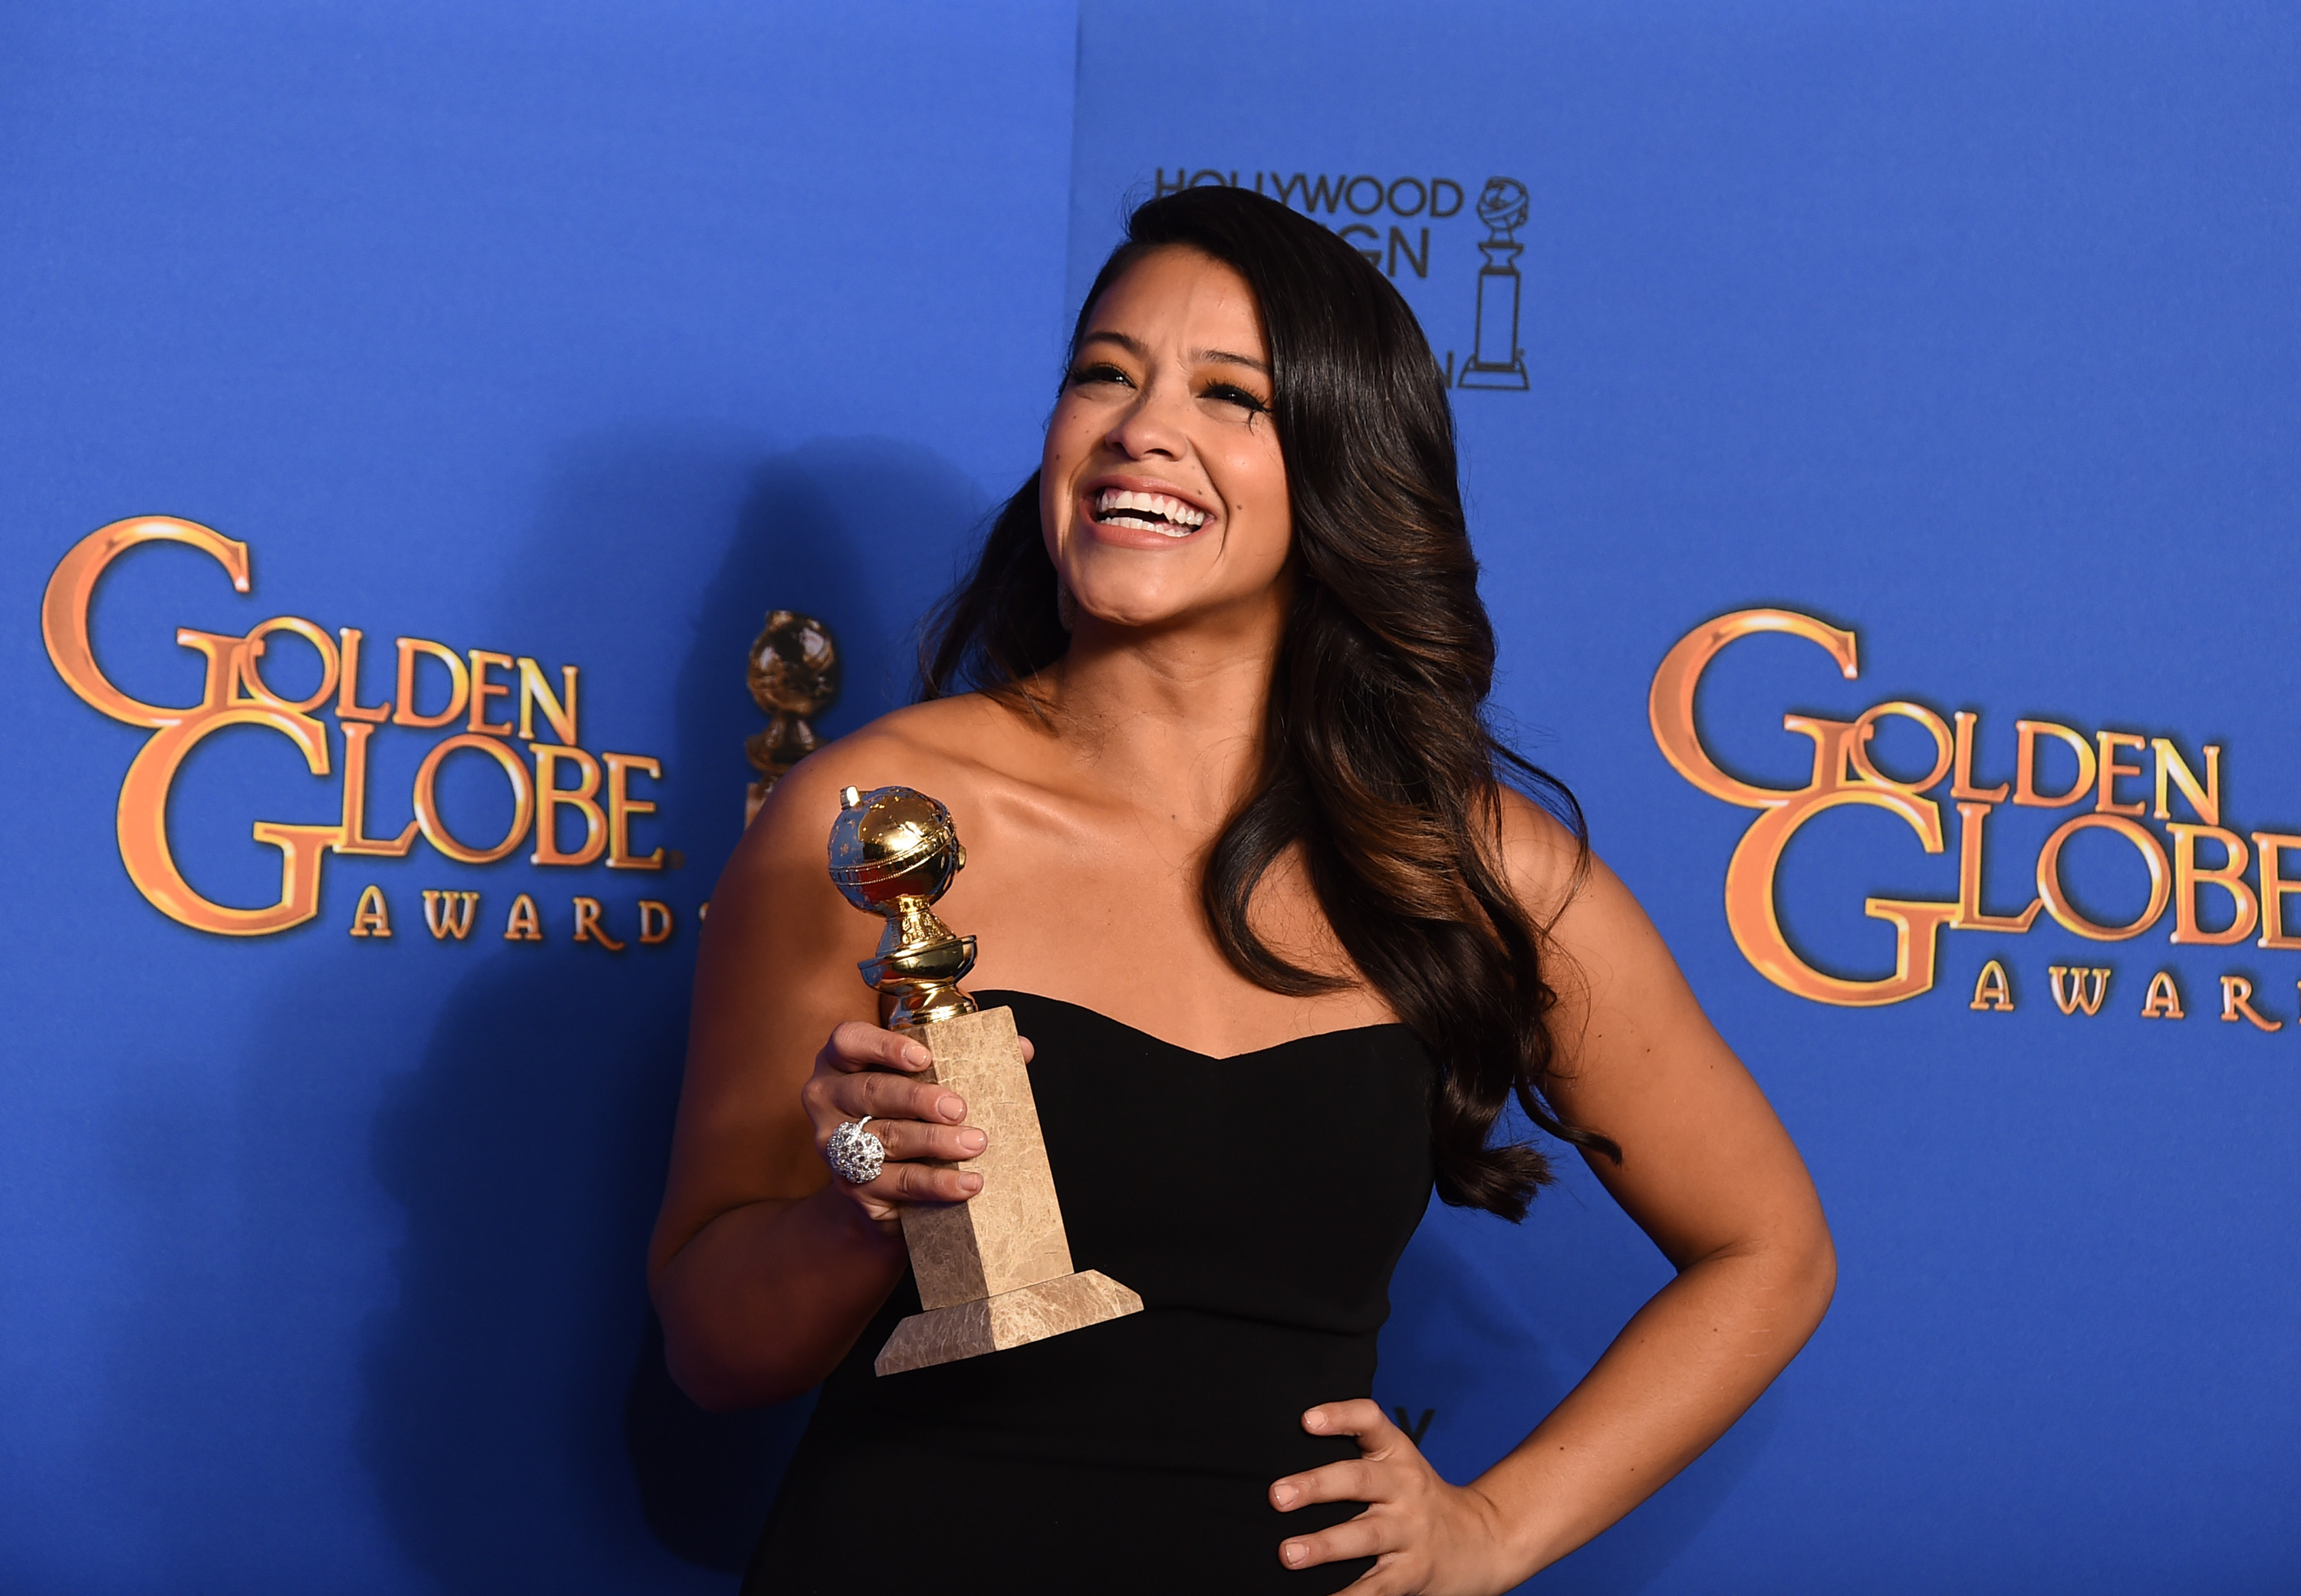 Gina Rodriguez poses with her award for best actress in a television series - musical or comedy for 'Jane the Virgin,' at the 72nd annual Golden Globe Awards in January 2015. (Photo by Jordan Strauss/Invision/AP, File)